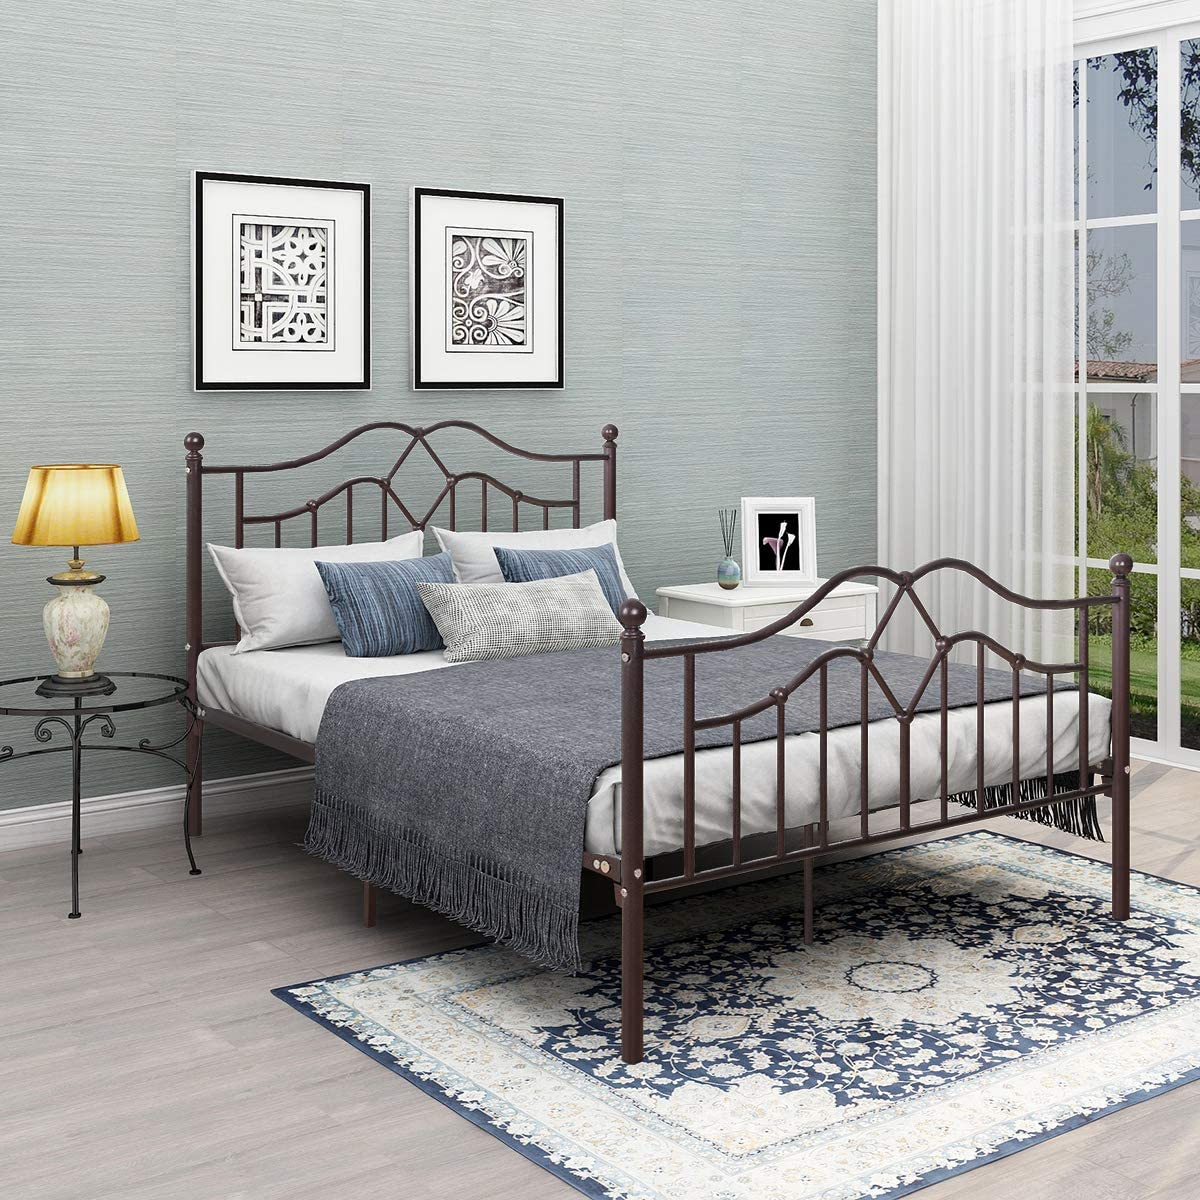 Metal Bed Frame Full Size with Steel Headboard and Footboard Mattress Foundation Bedroom Furniture Box Spring Replacement for Adults Bronze